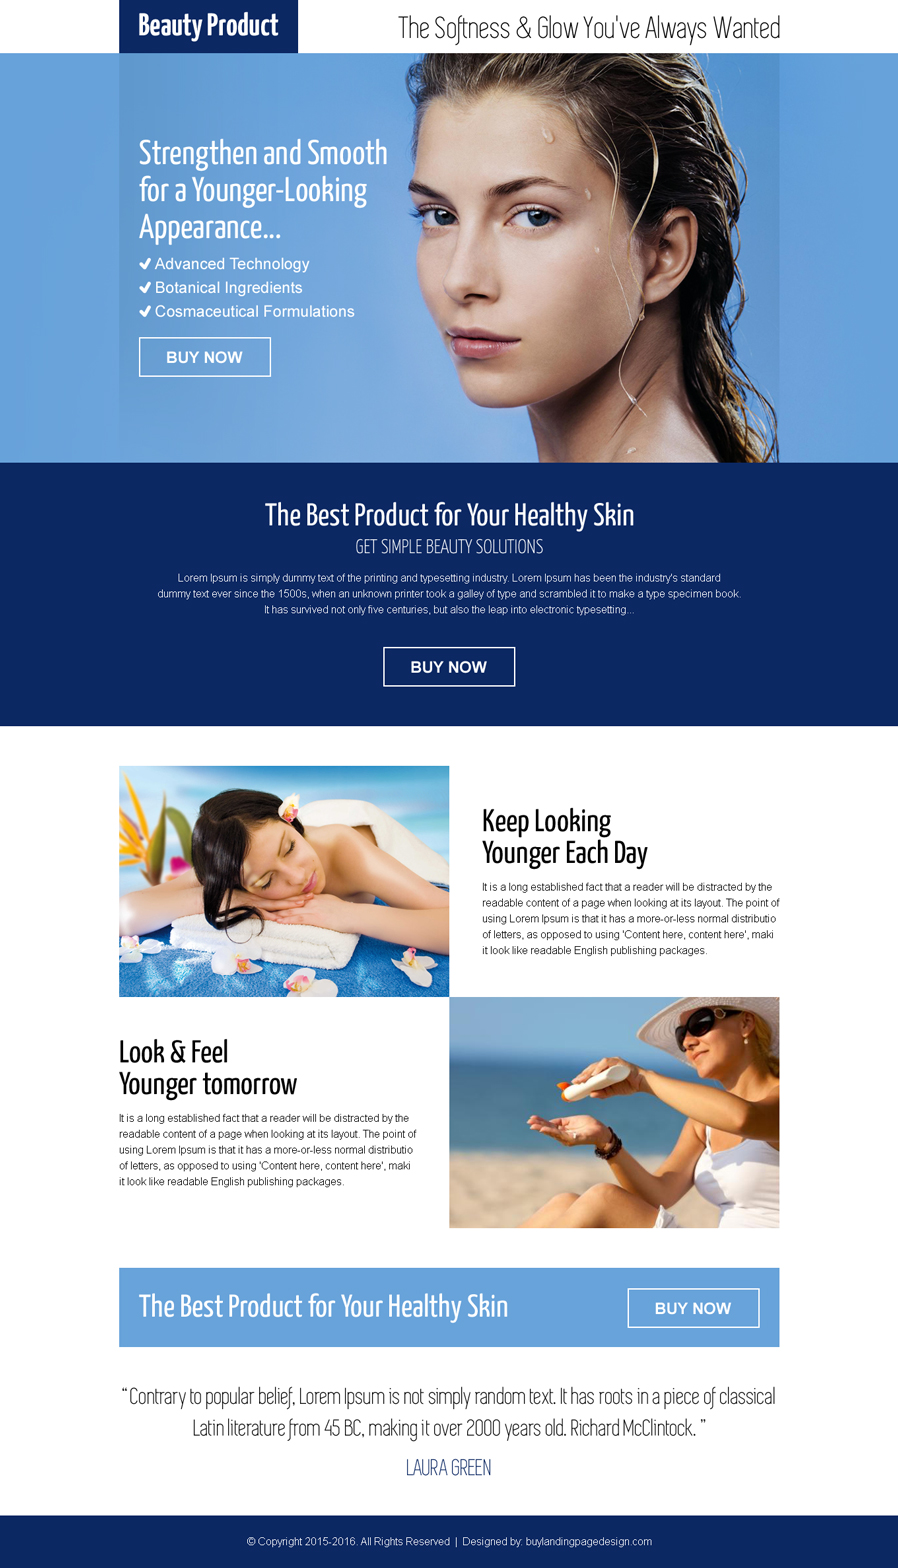 beauty-product-call-to-action-ppc-landing-page-design-that-converts-014